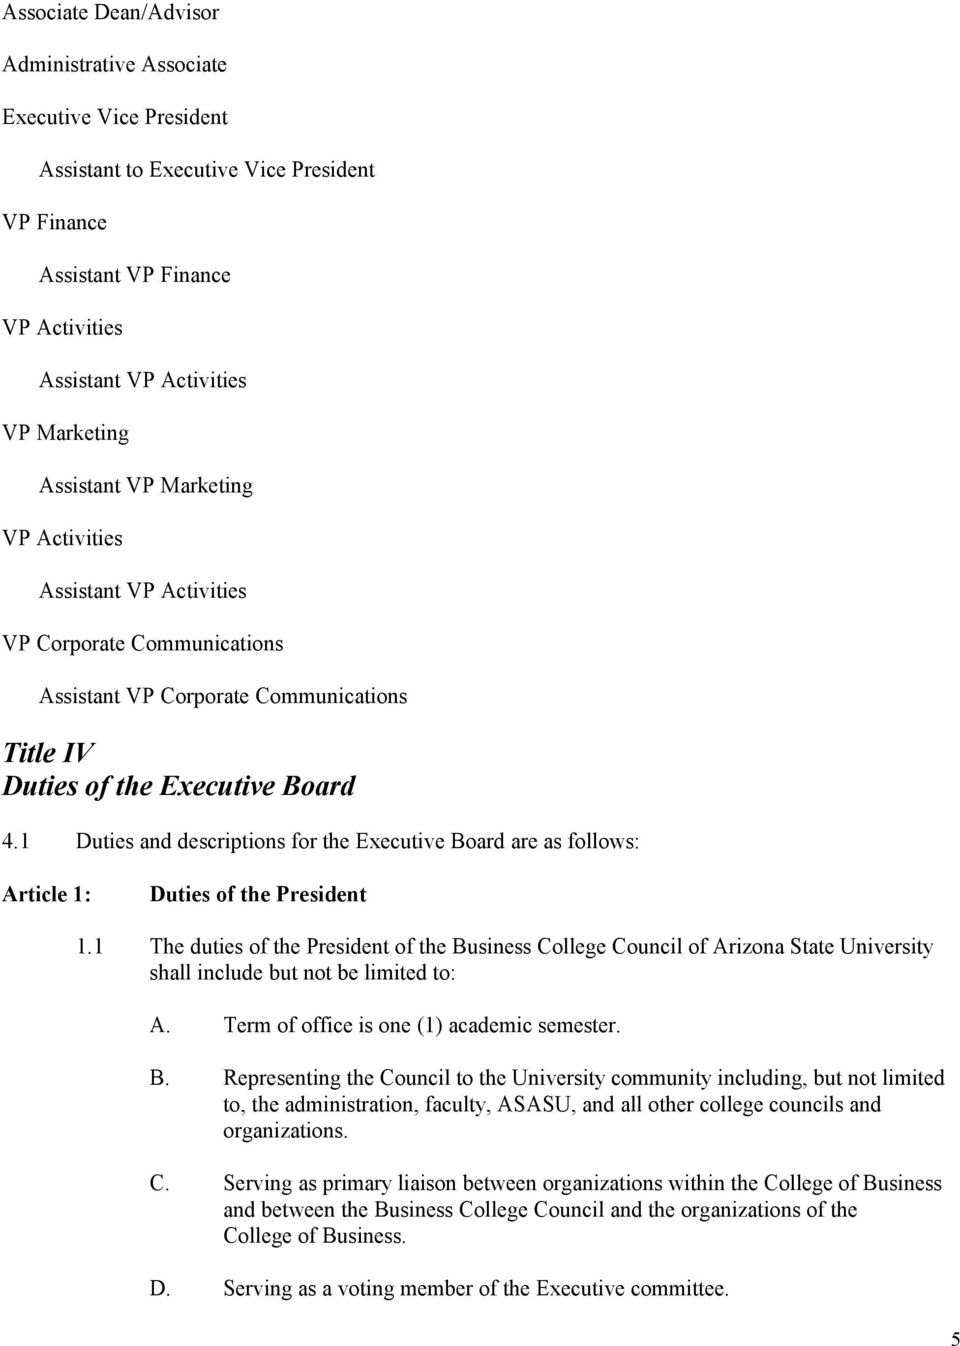 1 Duties and descriptions for the Executive Board are as follows: Duties of the President 1.